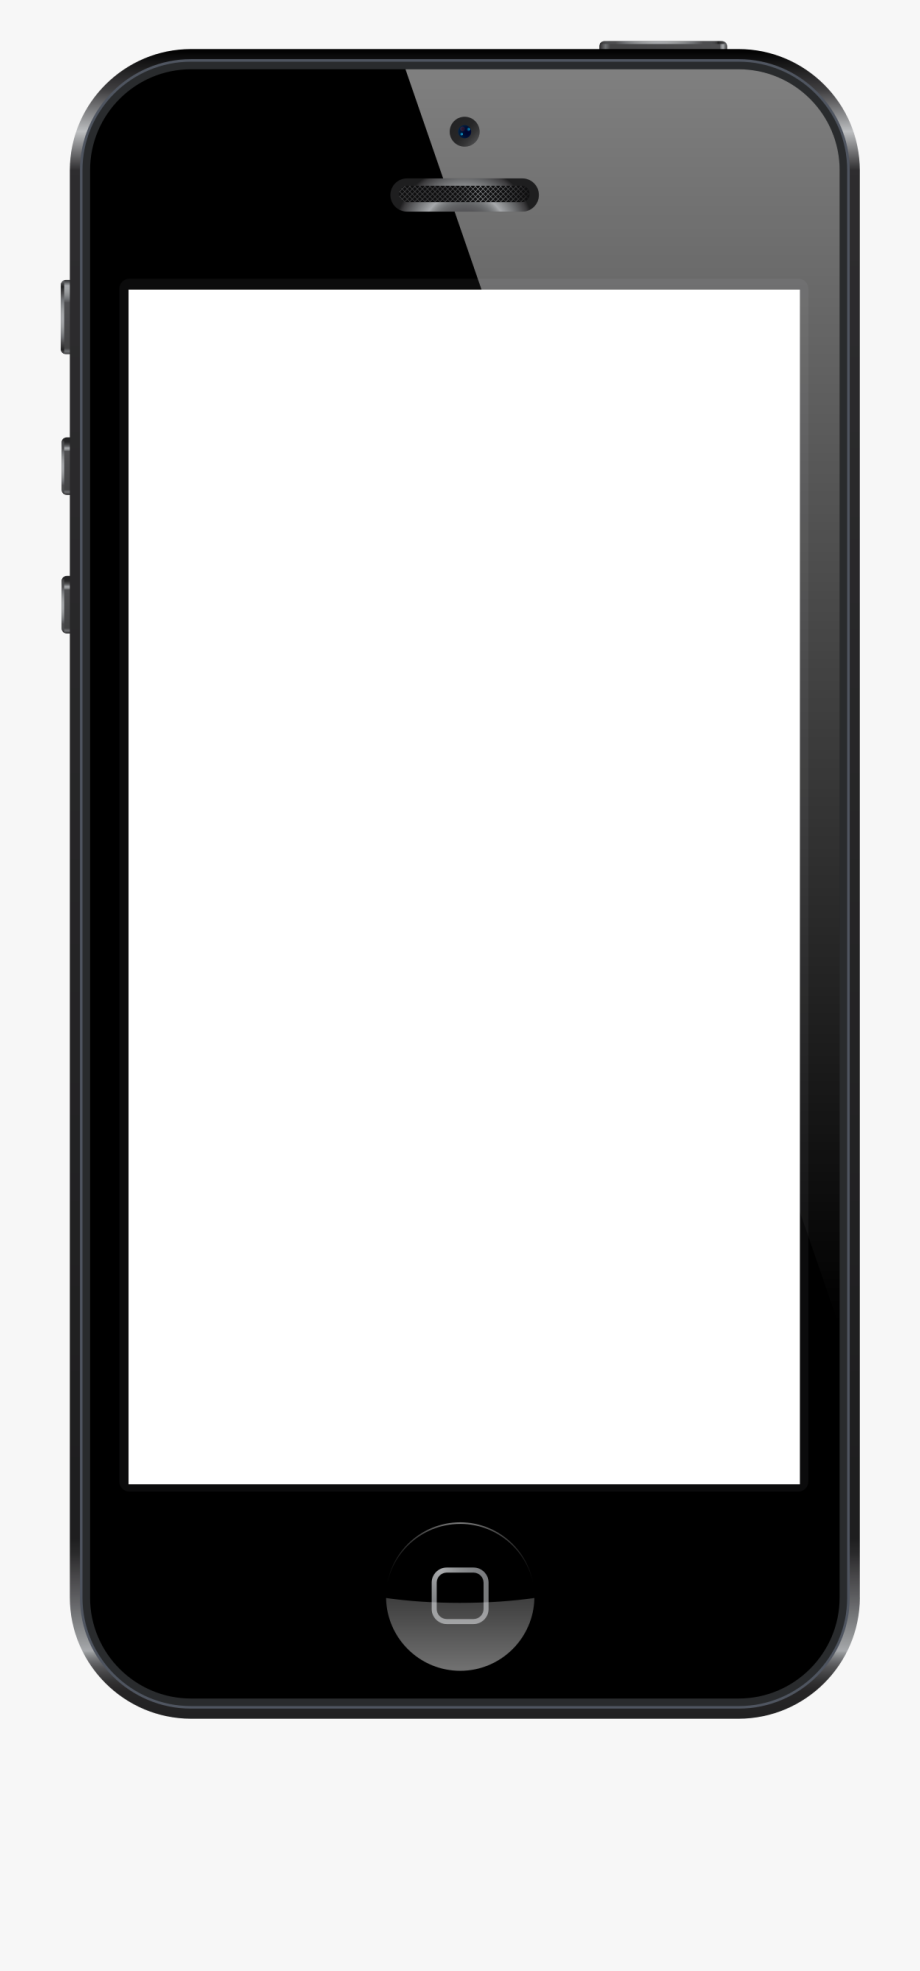 Blank phone png transparent. Iphone clipart smartphone